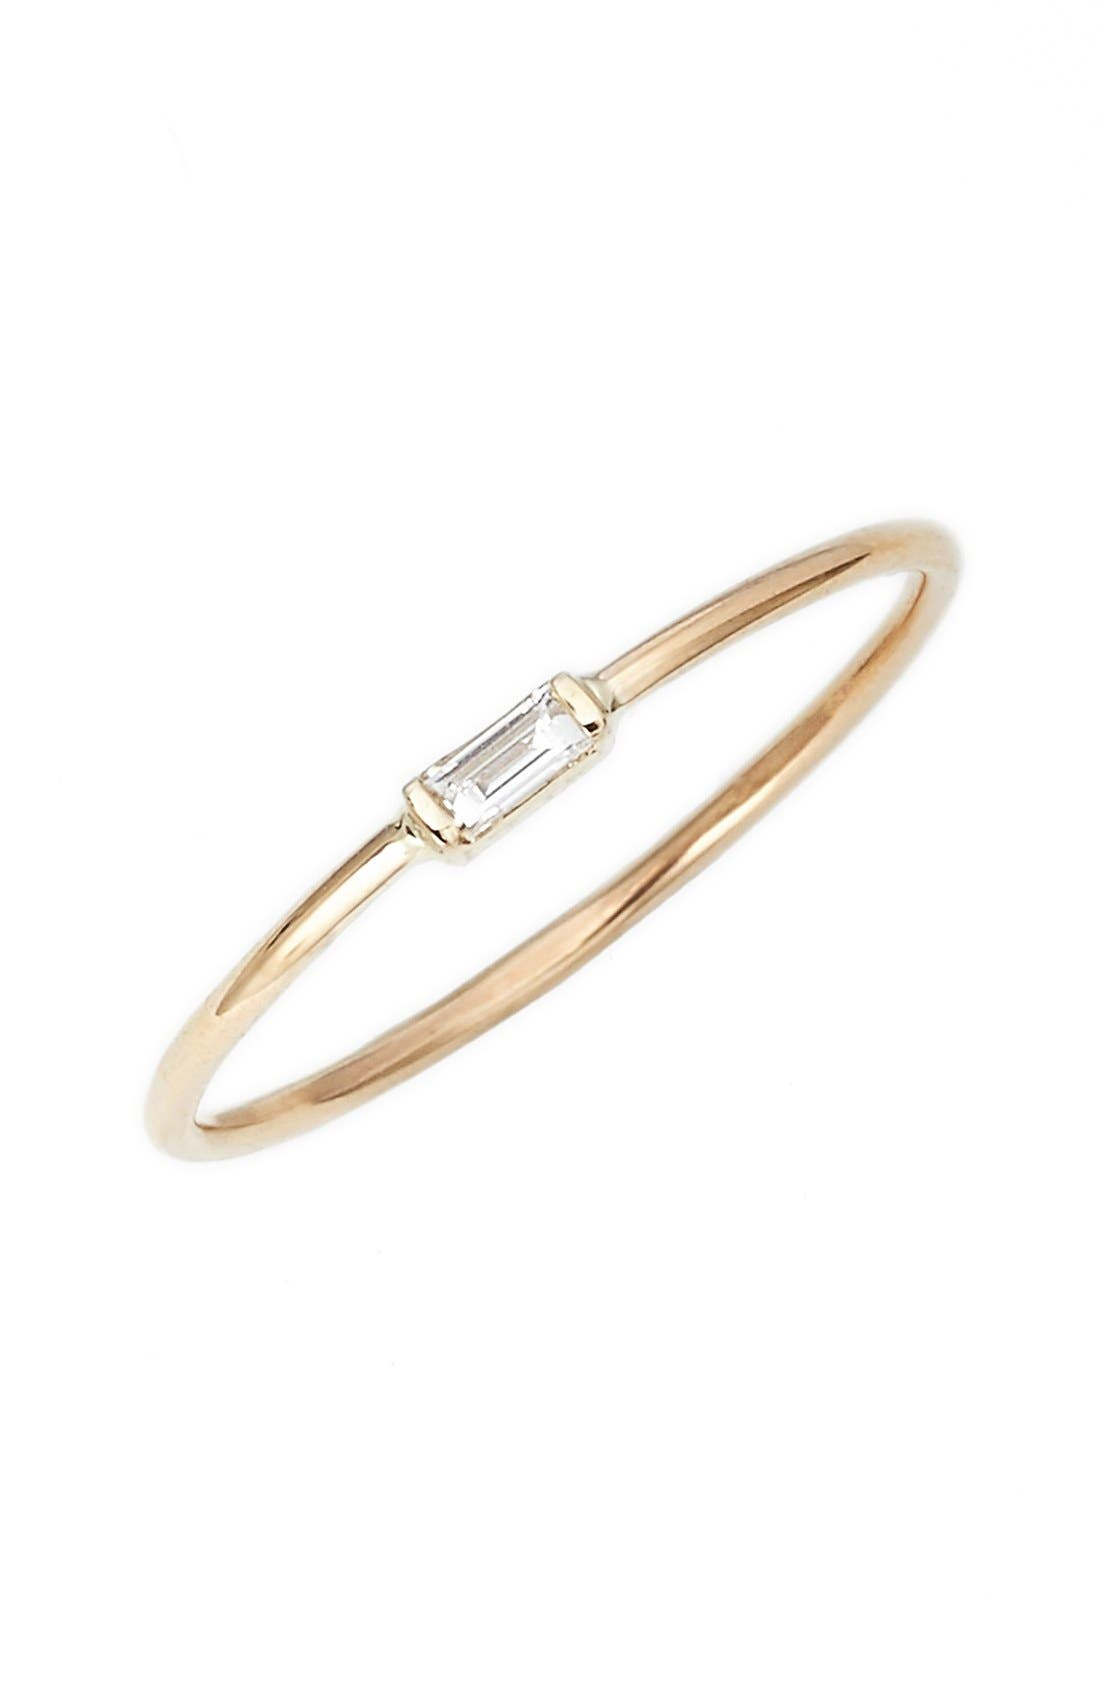 Baguette Diamond Stacking Ring,                             Main thumbnail 1, color,                             YELLOW GOLD